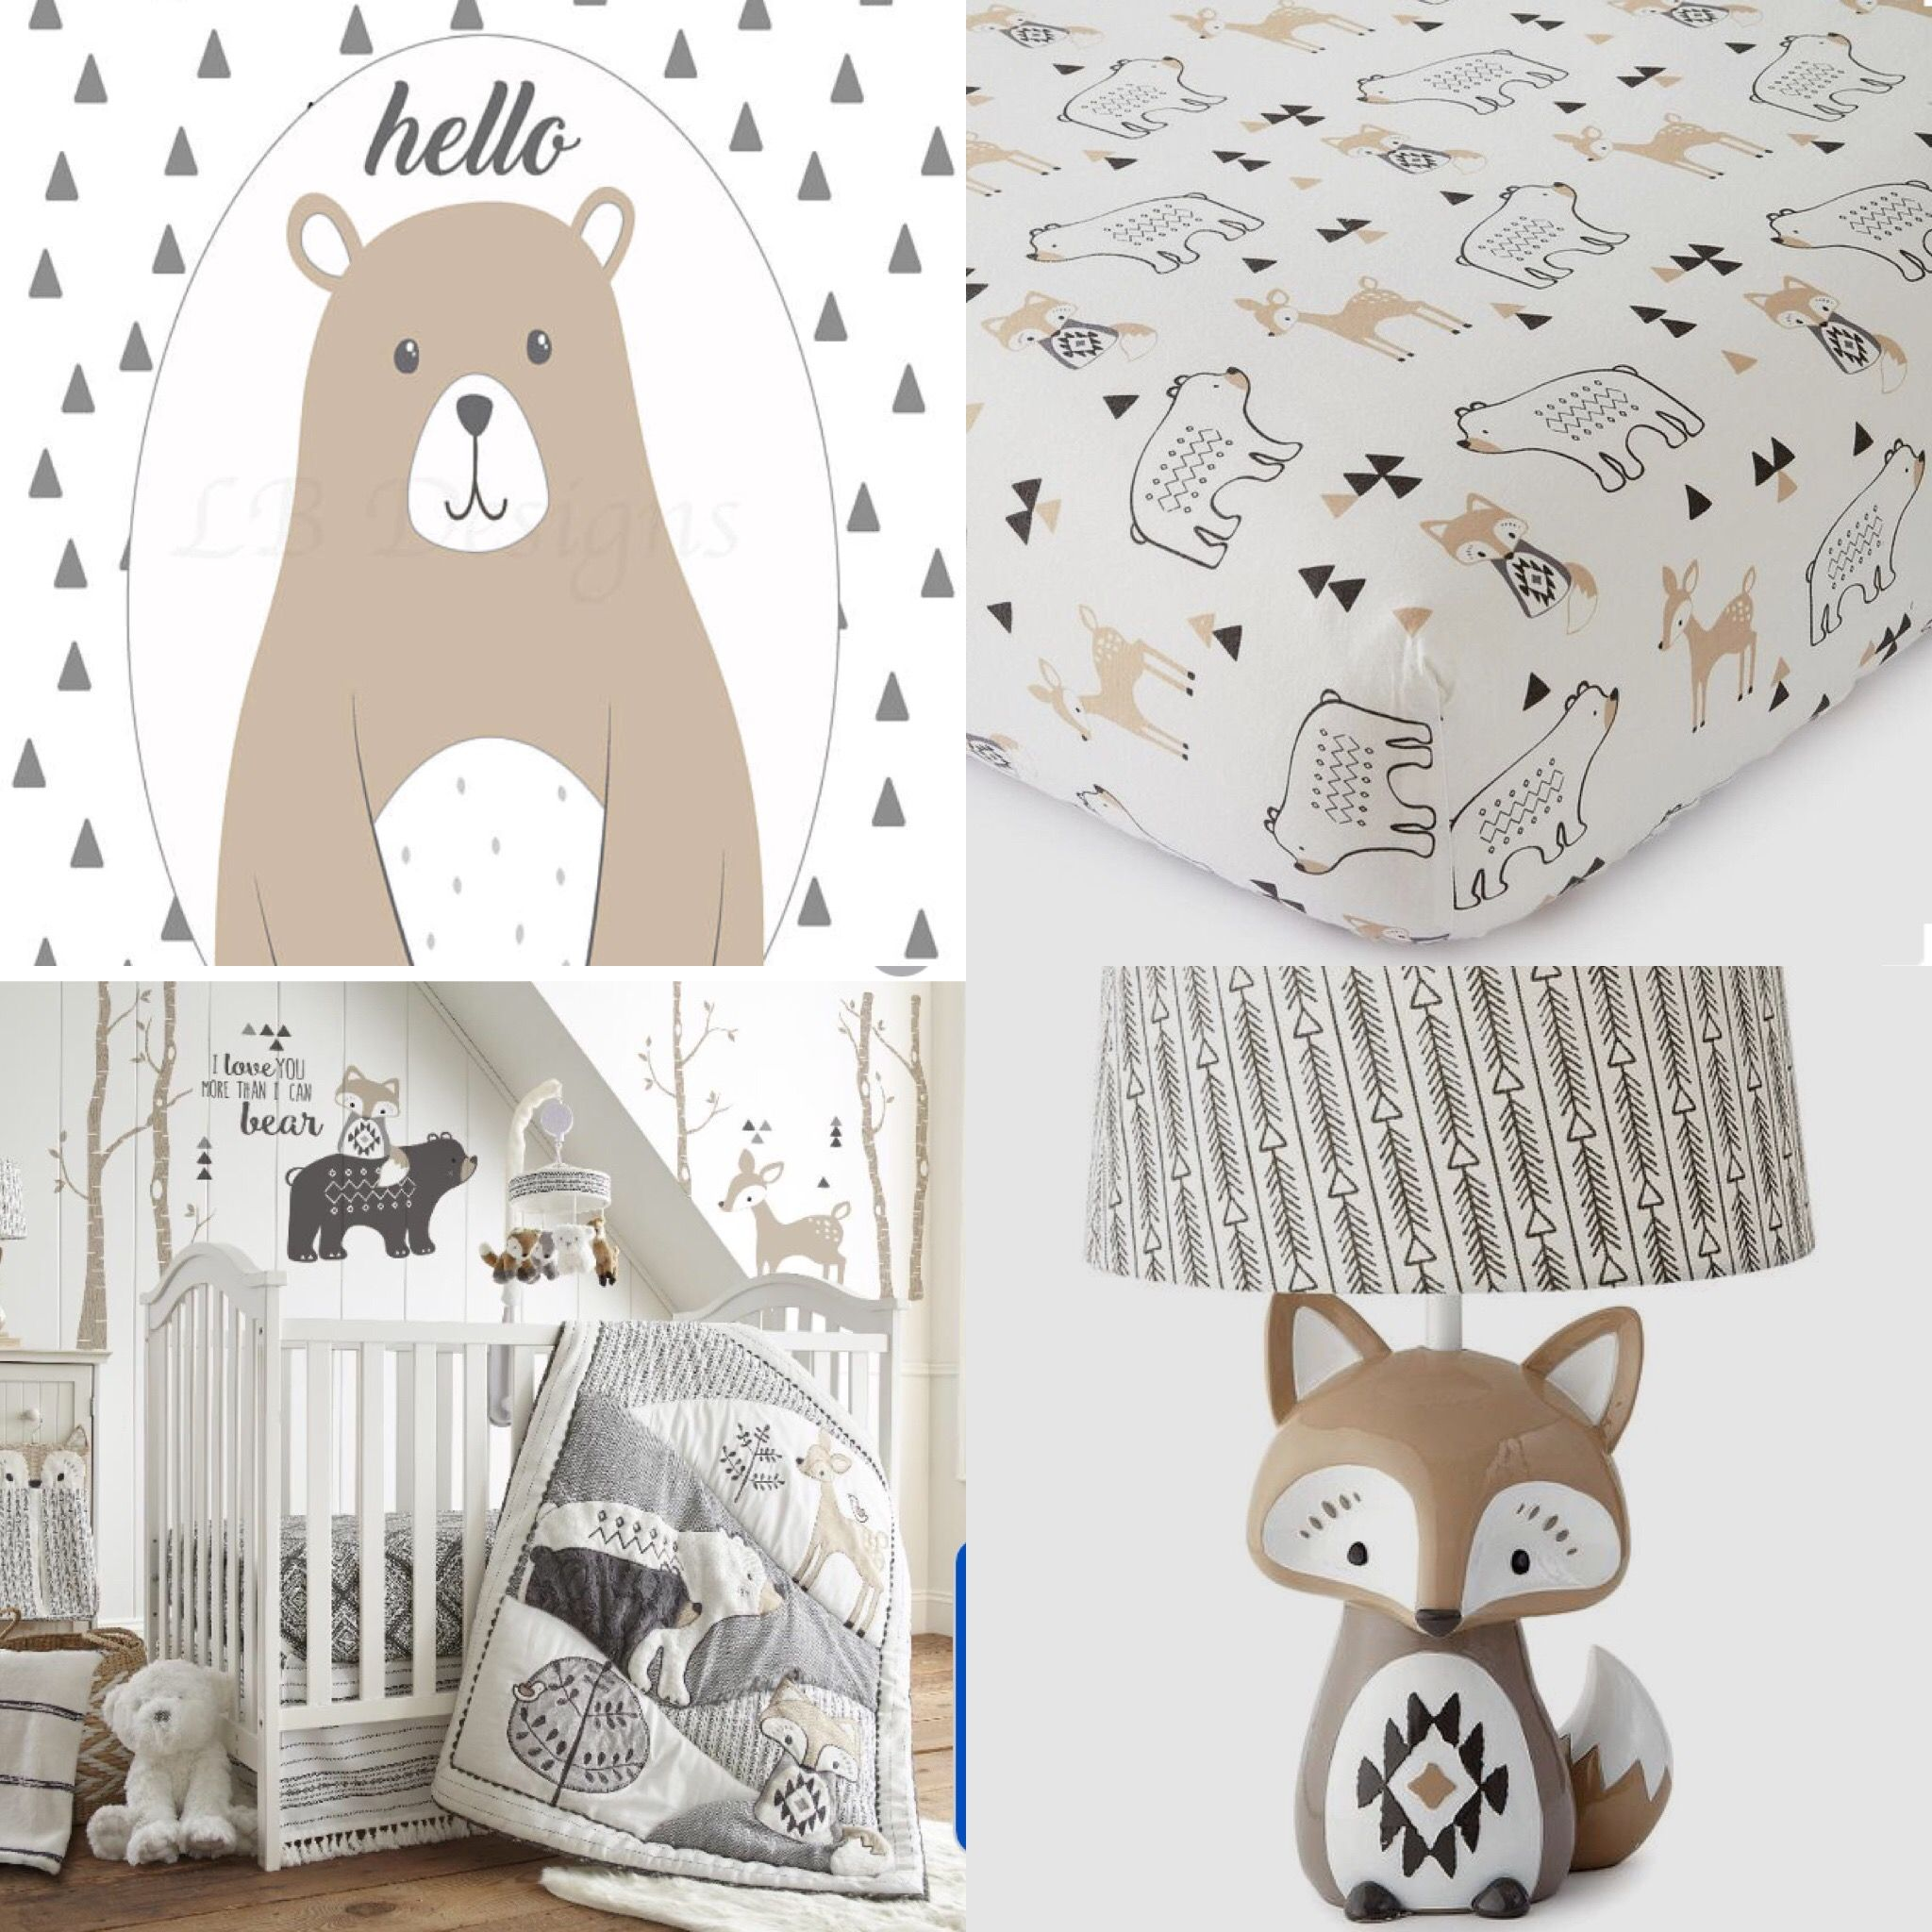 Levtex Baby Bailey Nursery Decor, Woodland Nursery Ideas, Gender Neutral